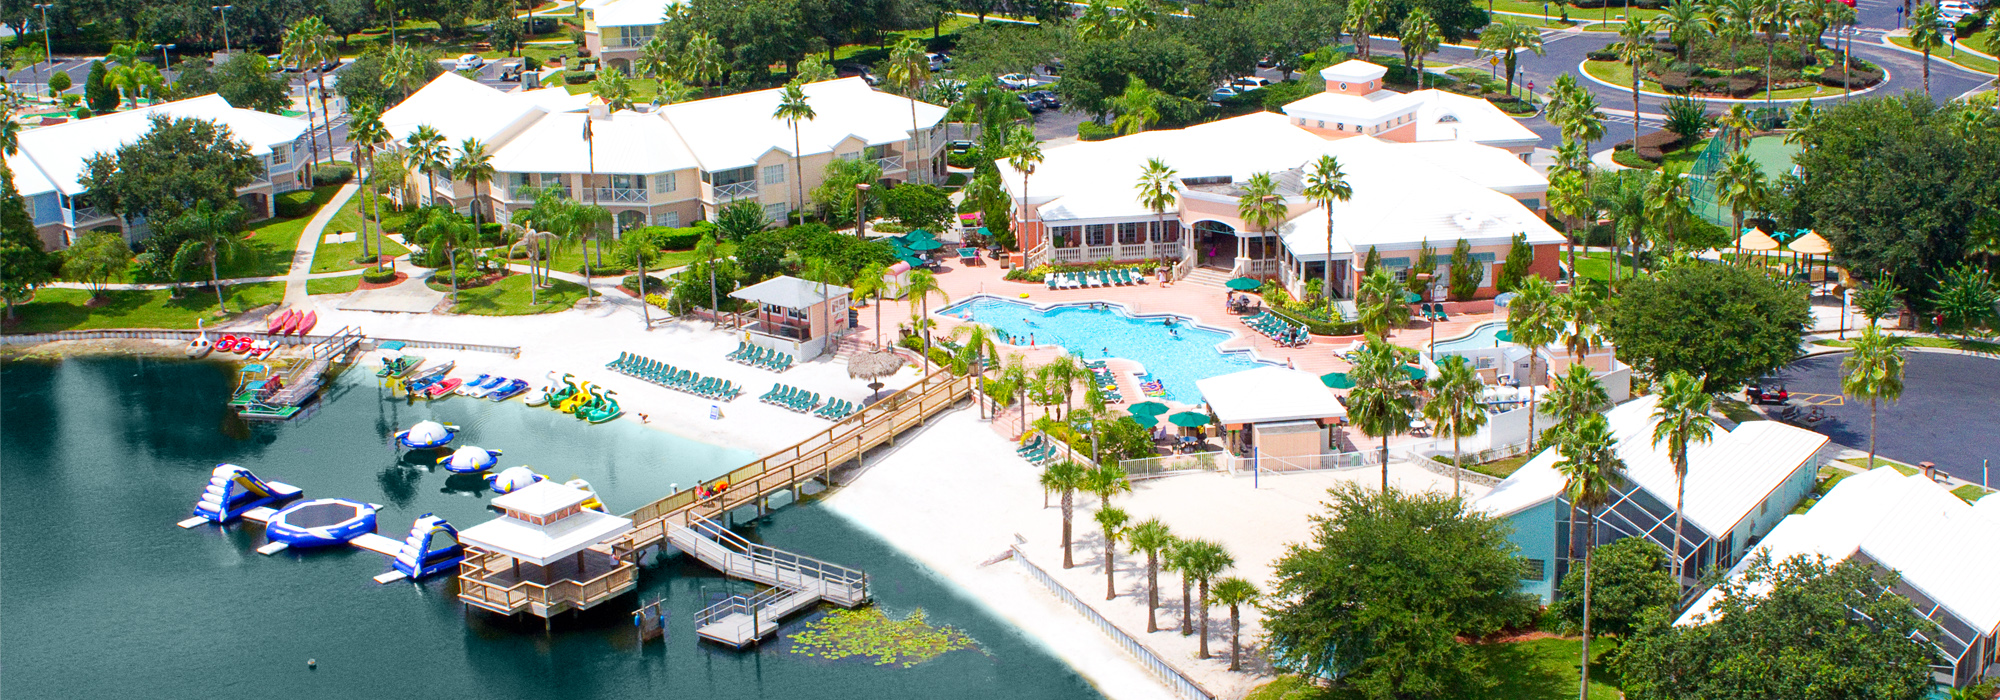 Bid On A 7 Night Stay In A 3 Bedroom Suite At The Houses At Summer Bay Resort In Florida Near